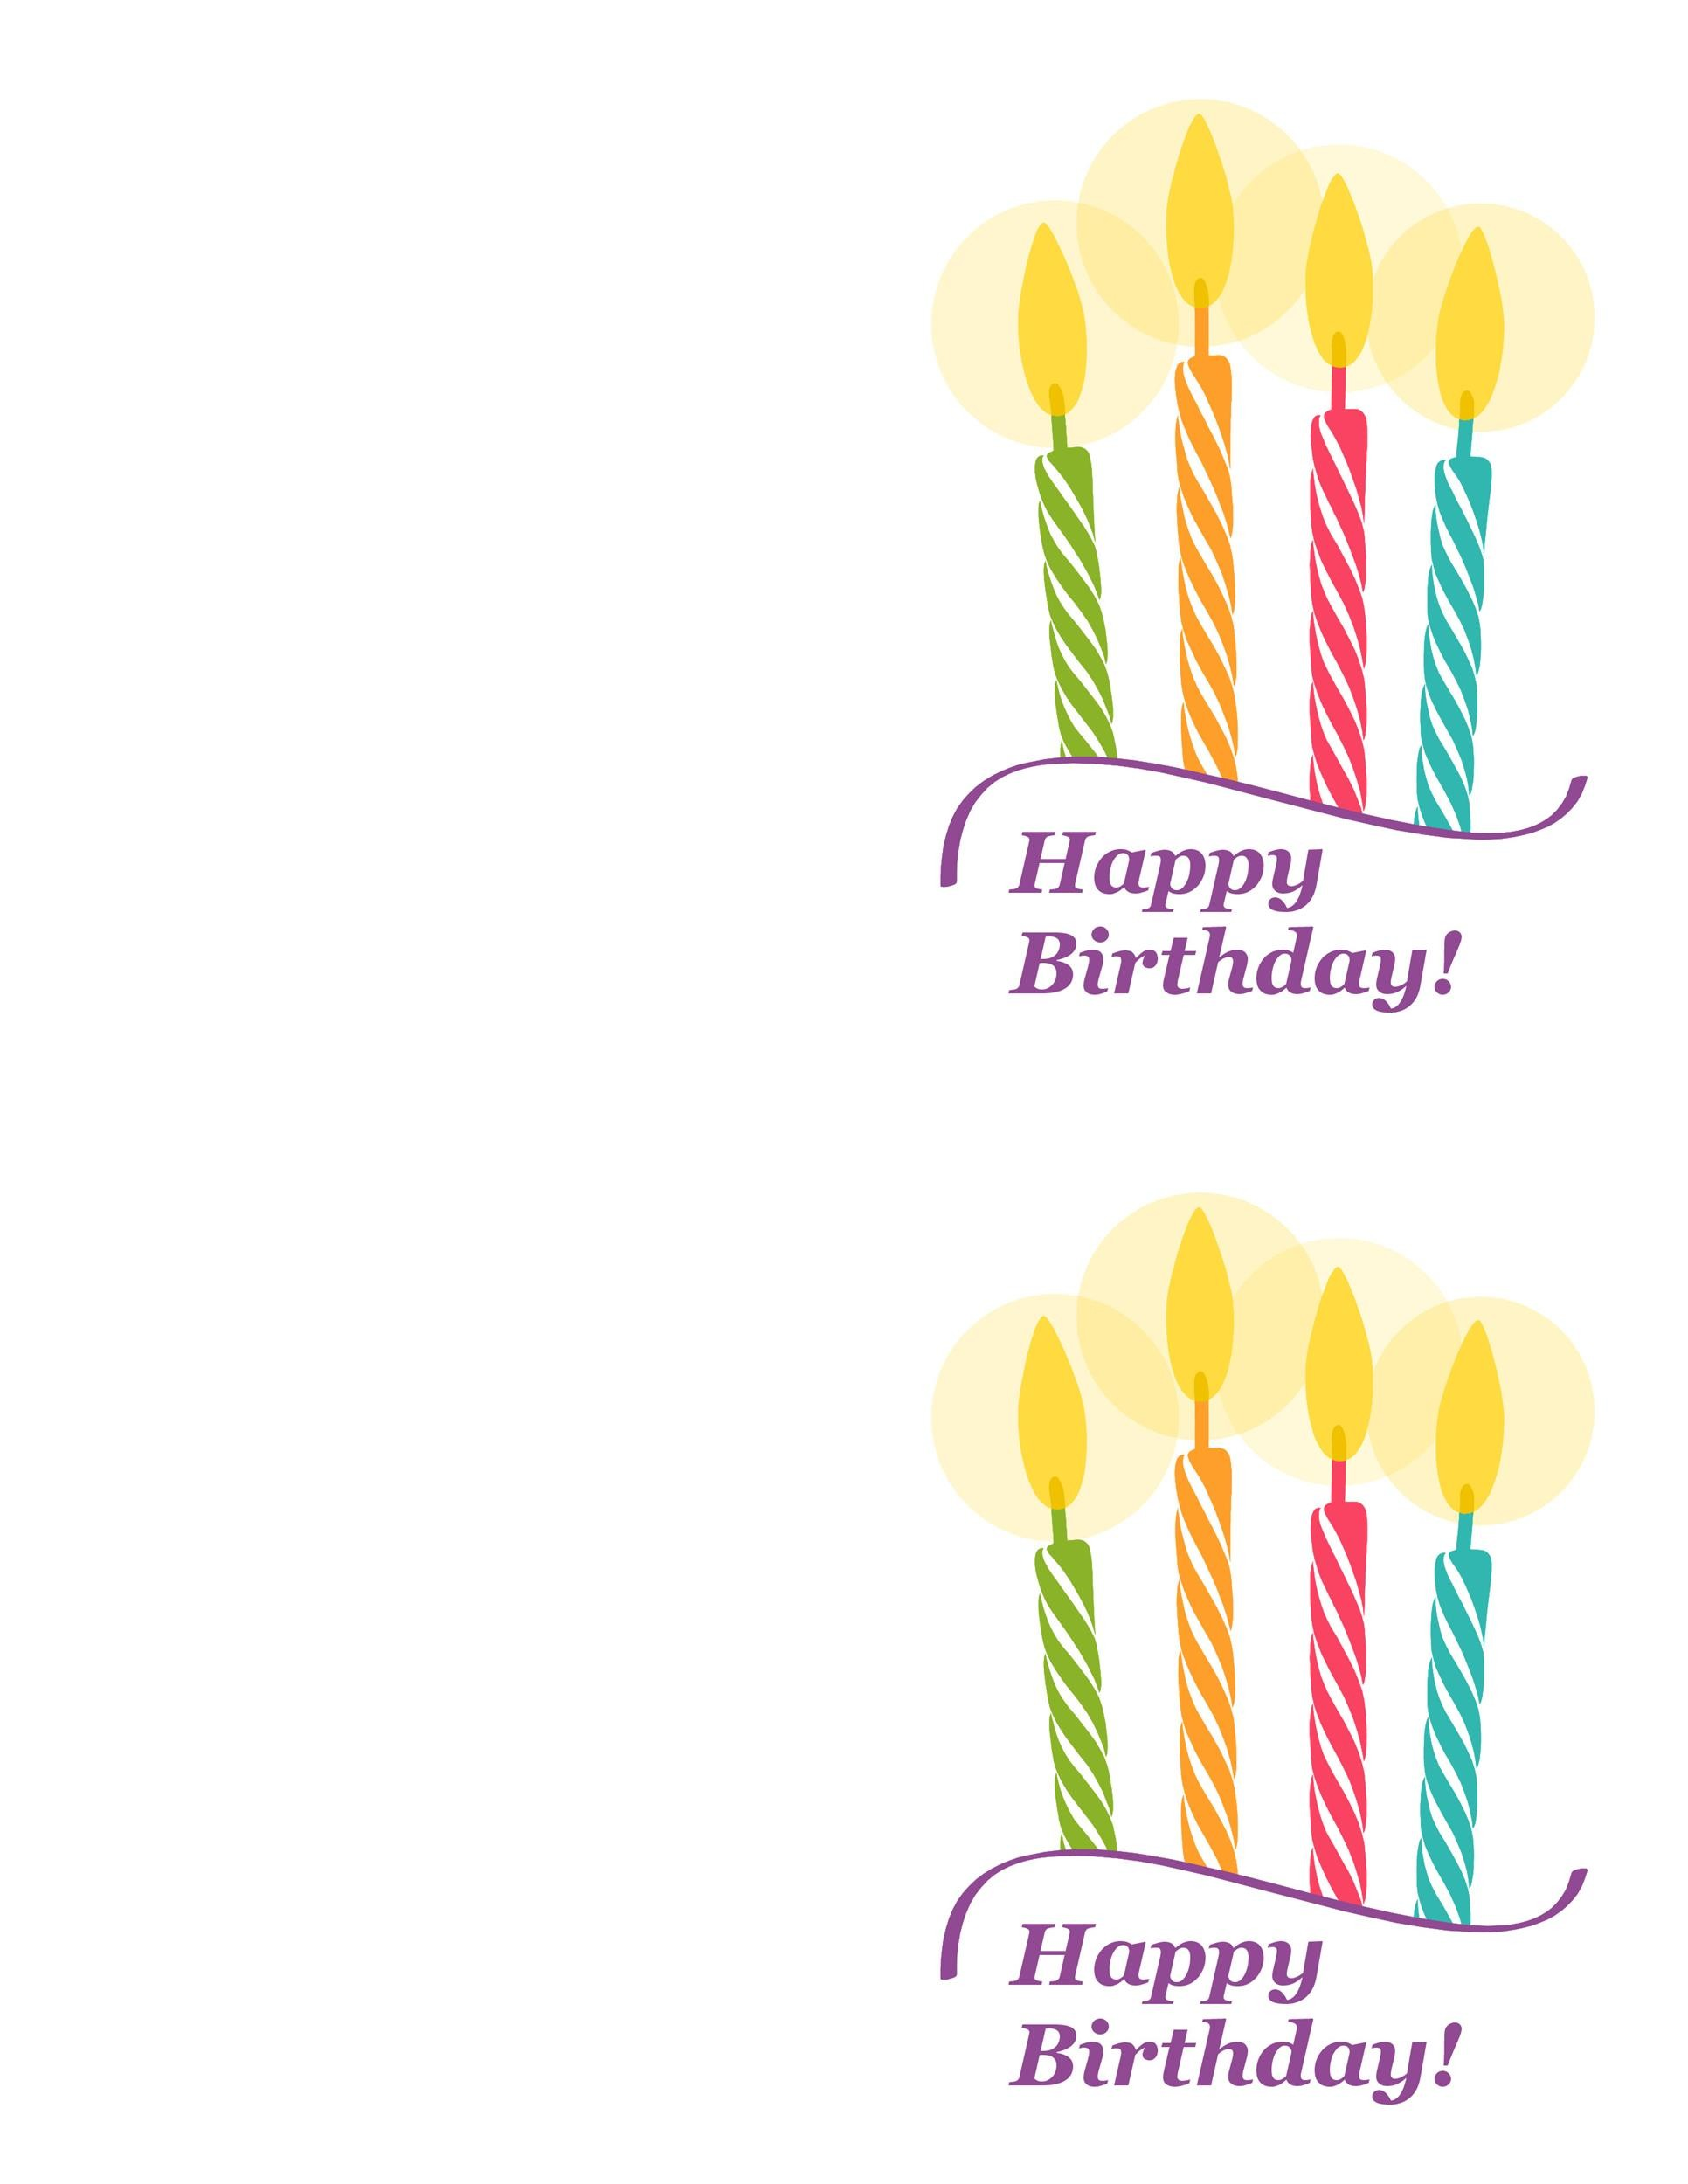 Printable Birthday Card Template 21  Happy Birthday Cards Templates